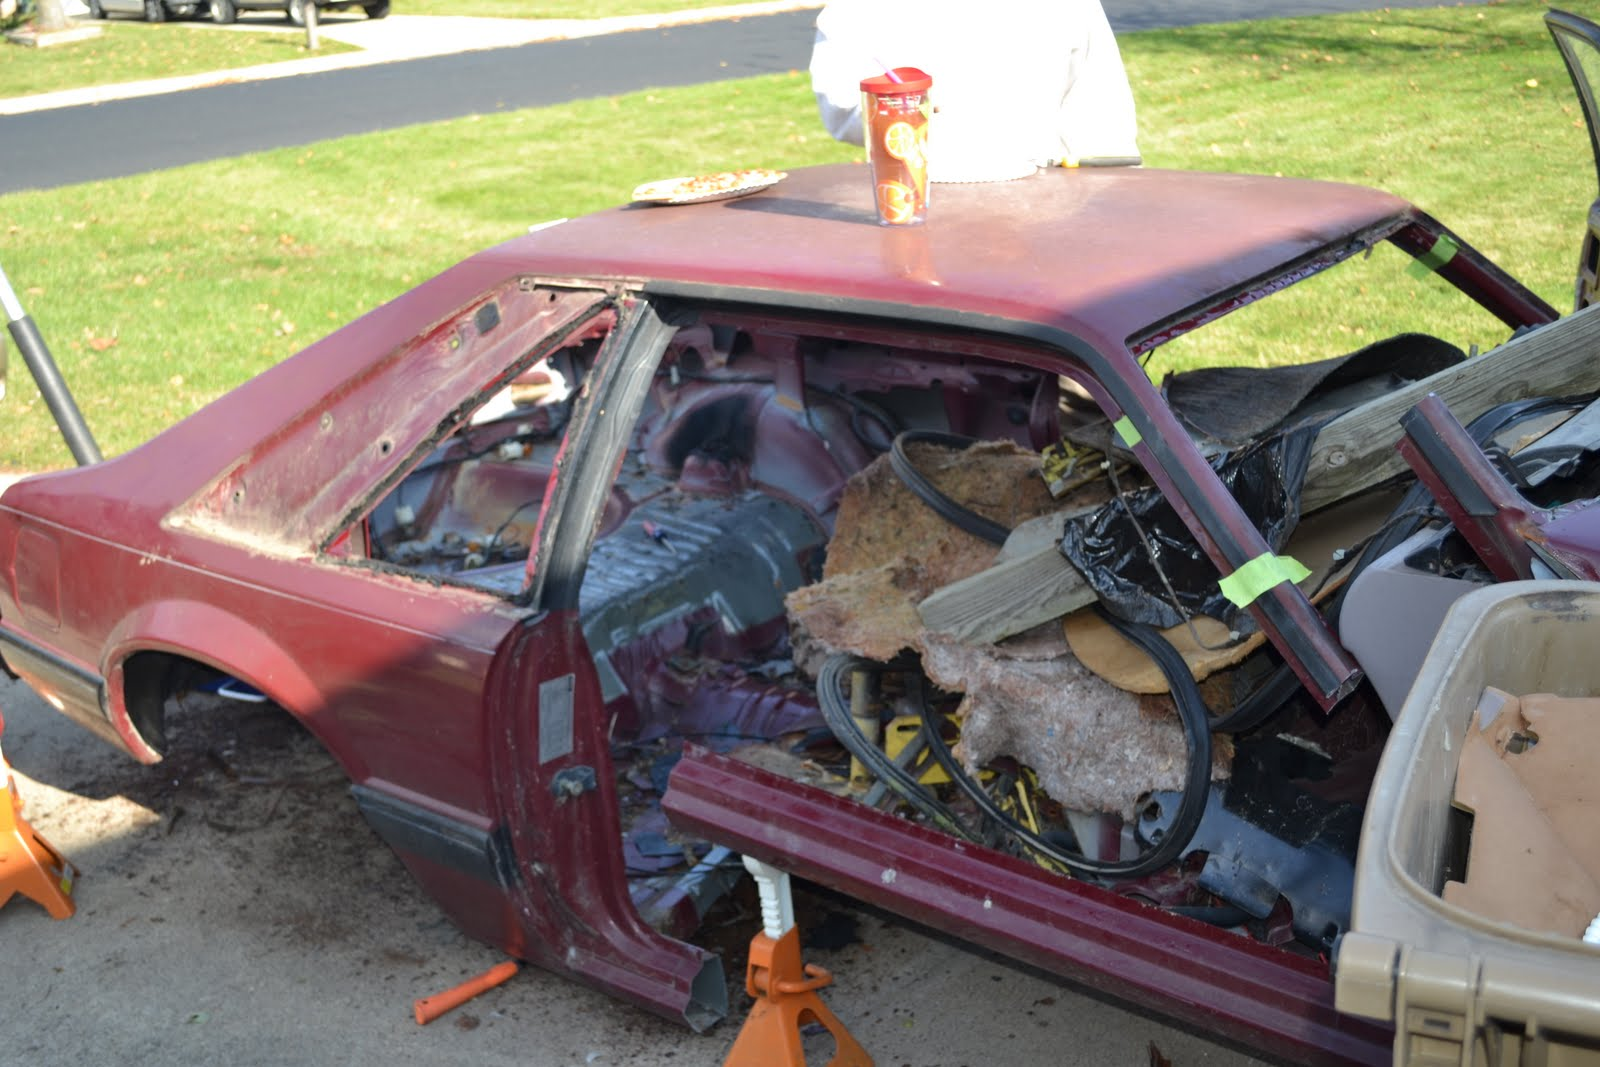 Fox Body Mustang Restoration: Mustang Parts Car Demolition Continued